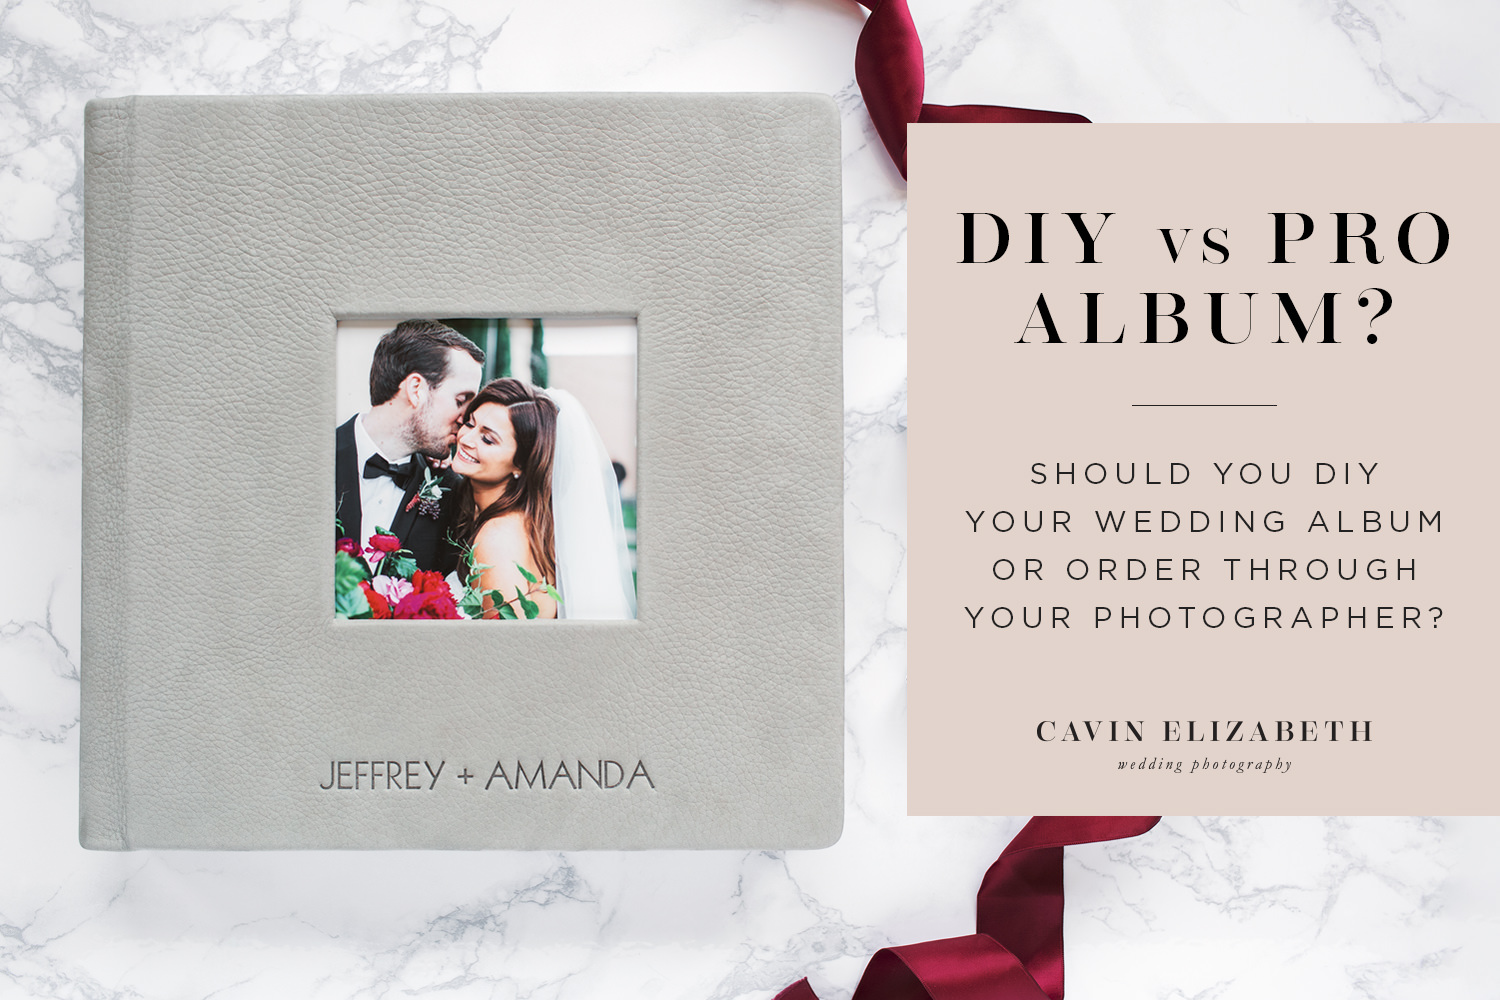 DIY or Professional Wedding Album? Why Pro is Worth the Cost, order your album through your wedding photographer for best results